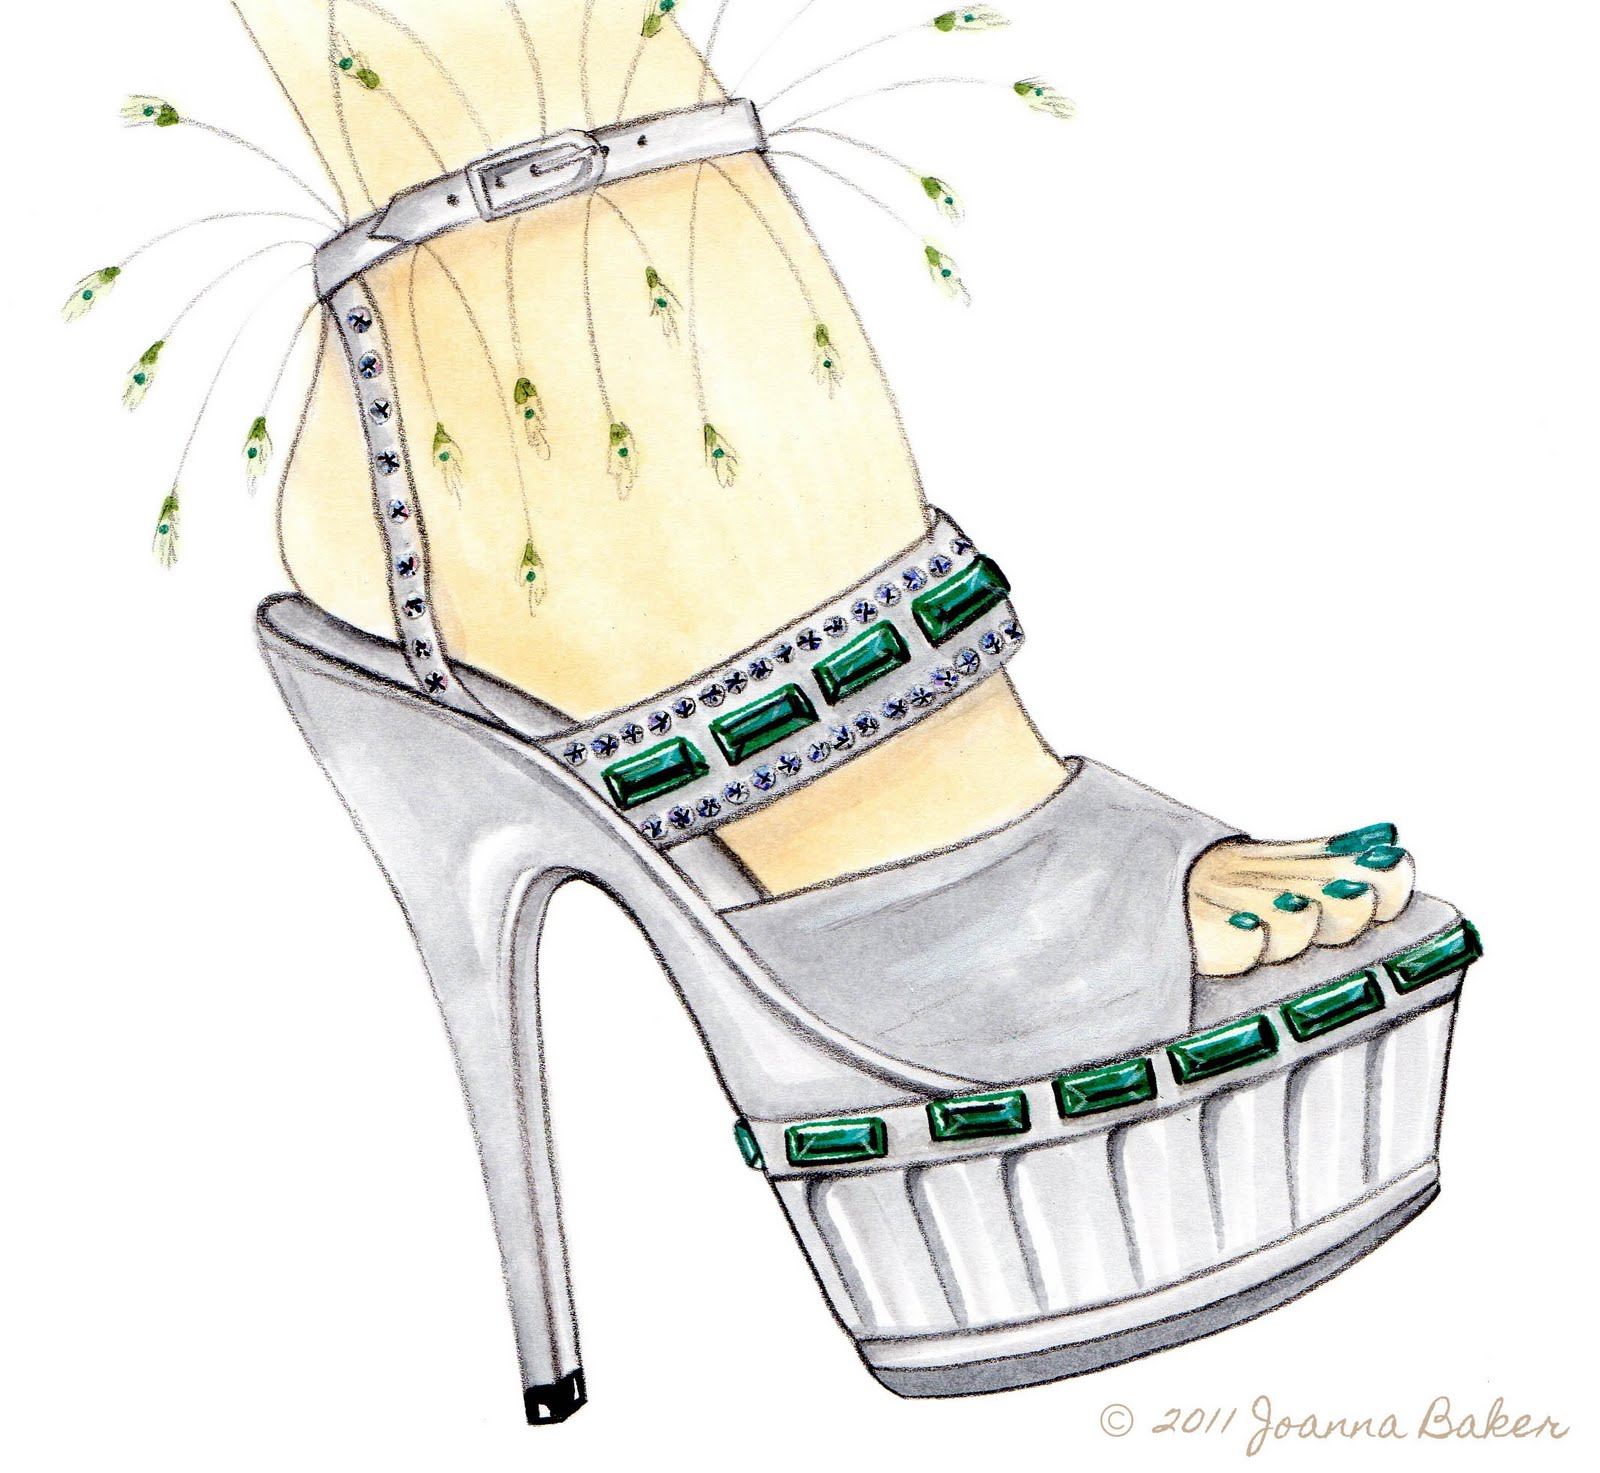 Inspired by the many amazing sketches of Manolo Blahnik from my